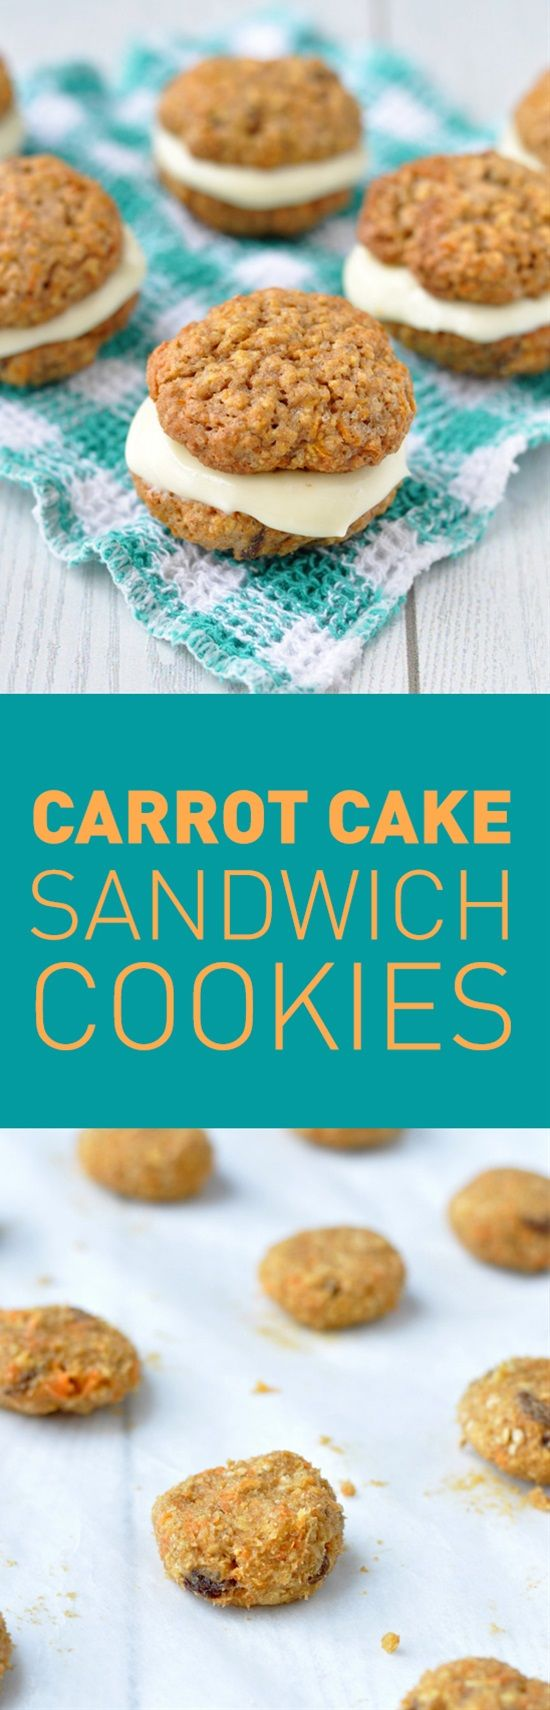 Light and fluffy cookies loaded up with sweet shredded carrots and plump, juicy raisins sandwiched together with a rich cream cheese frosting, these carrot cake sandwich cookies are the ultimate springtime snack!